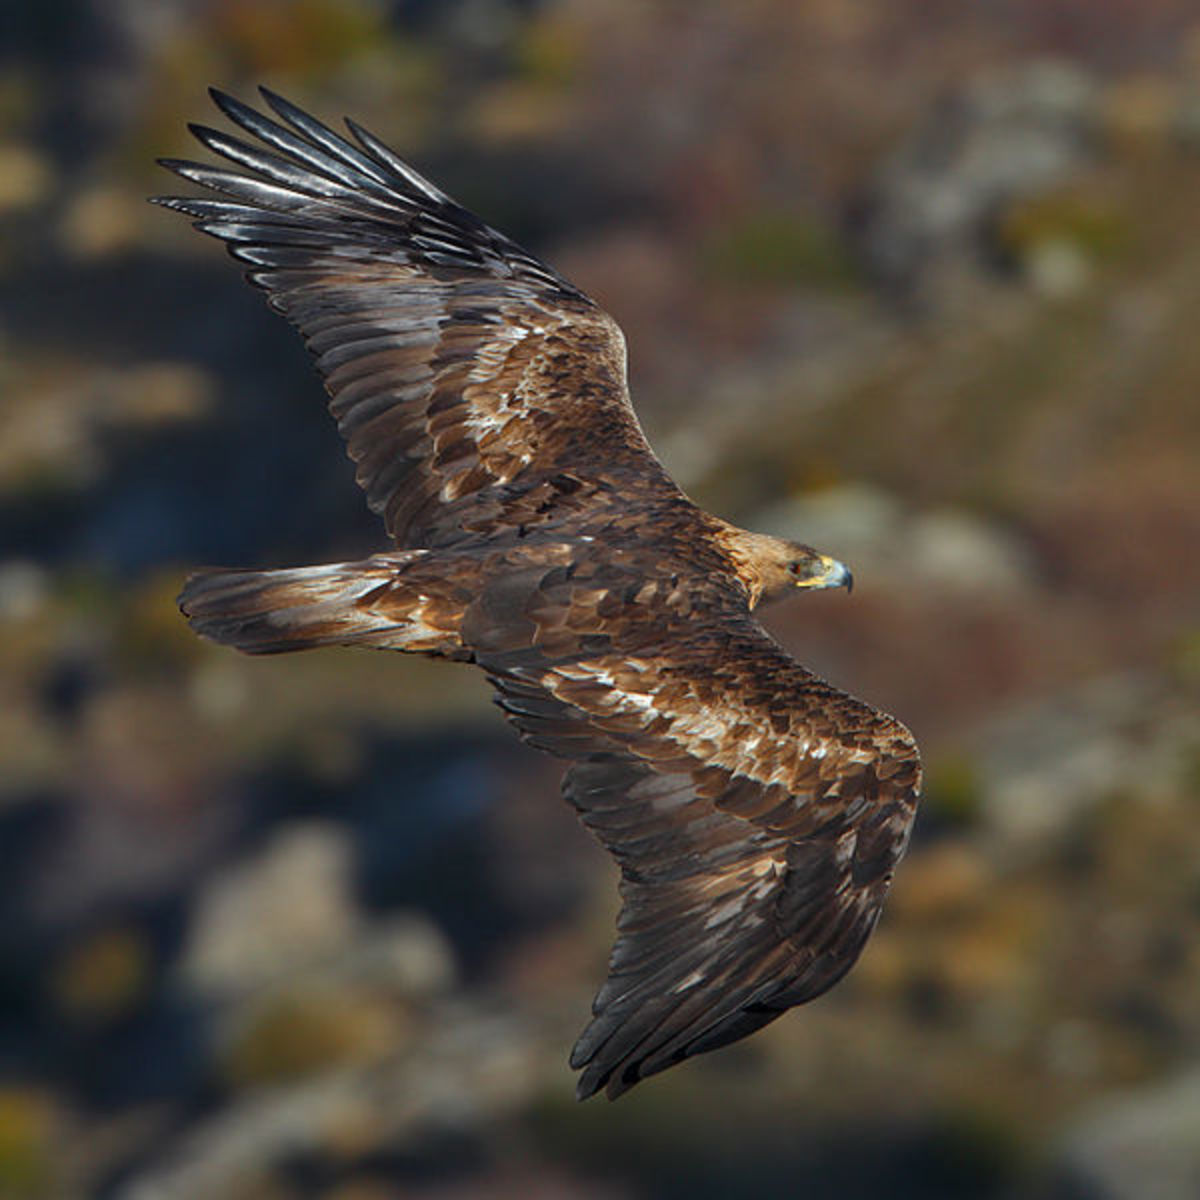 A golden eagle soars effortlessly. The primary feathers are spread out to obtain maximum advantage from rising air currents; they are also specially shaped to reduce turbulence, helping the eagle to gain speed when gliding downwards.